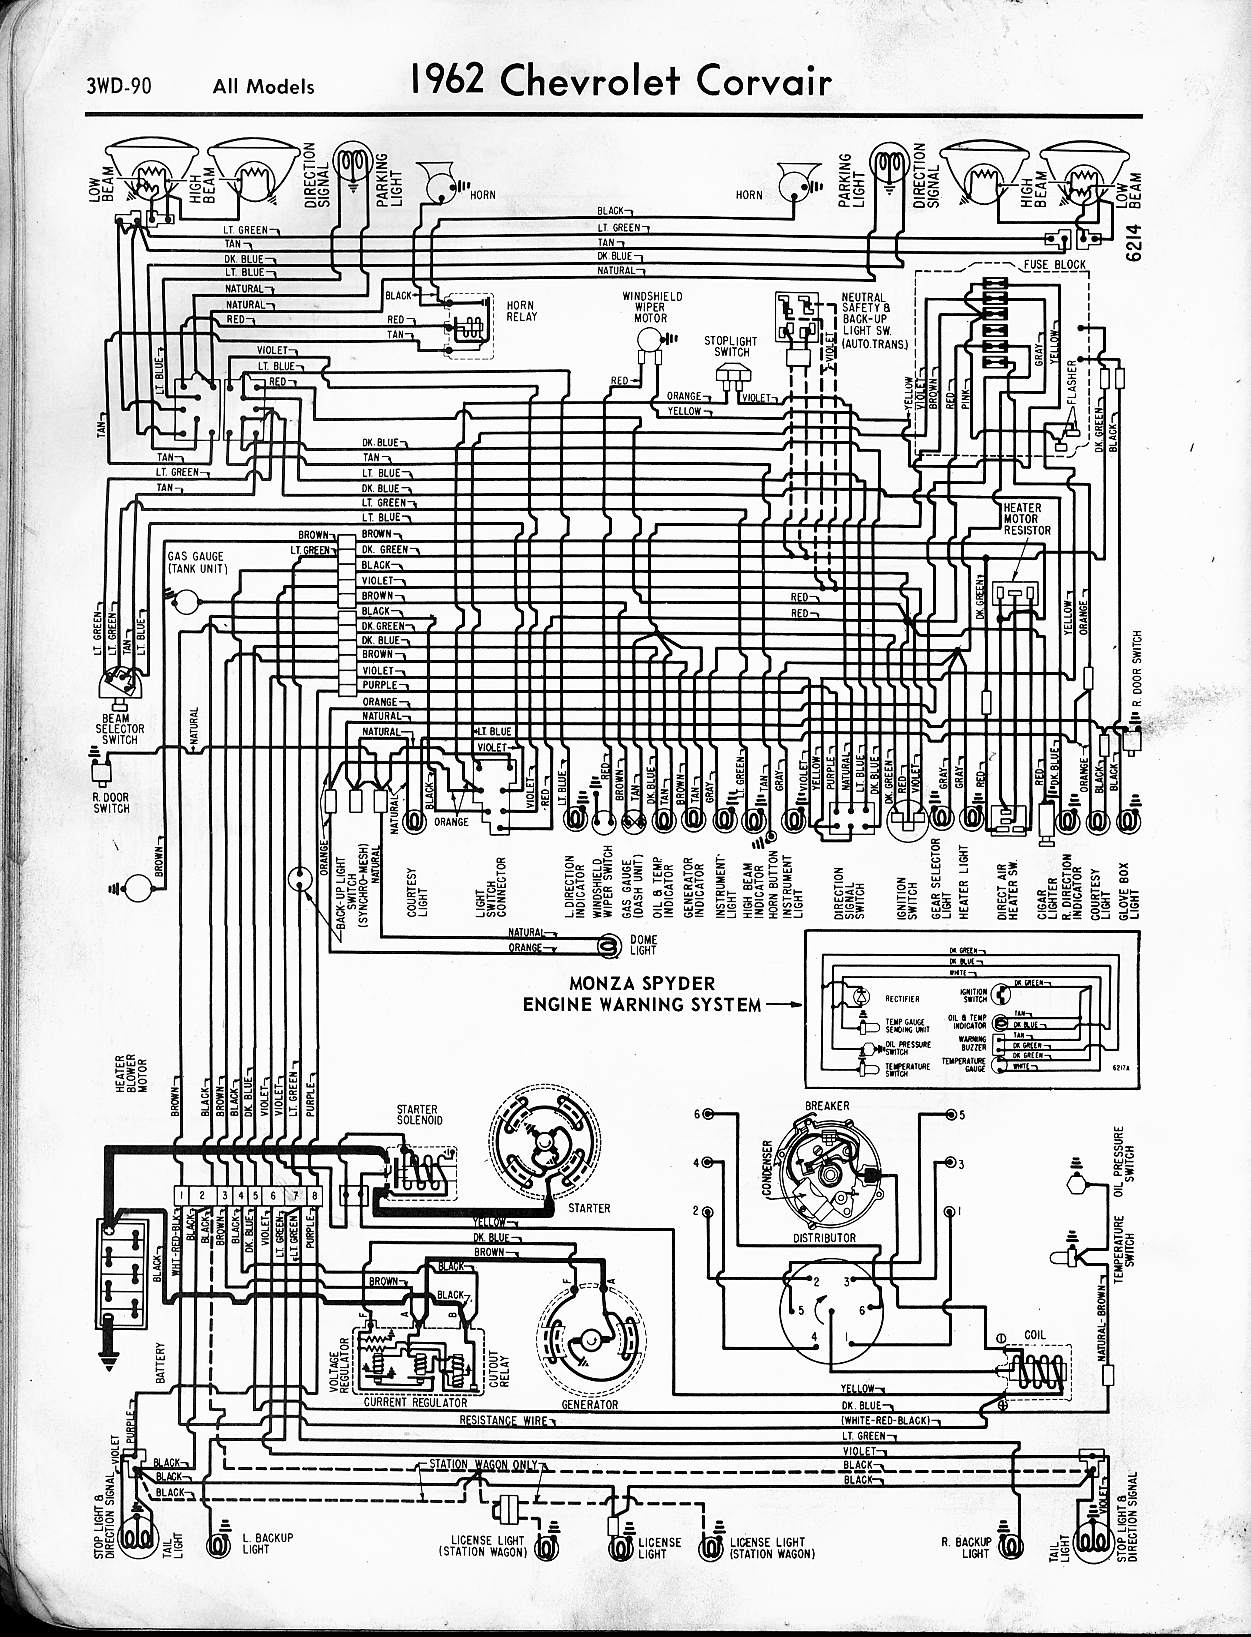 1962 Chevy Corvette Wiring Diagram Trusted 1965 Truck Starter Example Electrical 2009